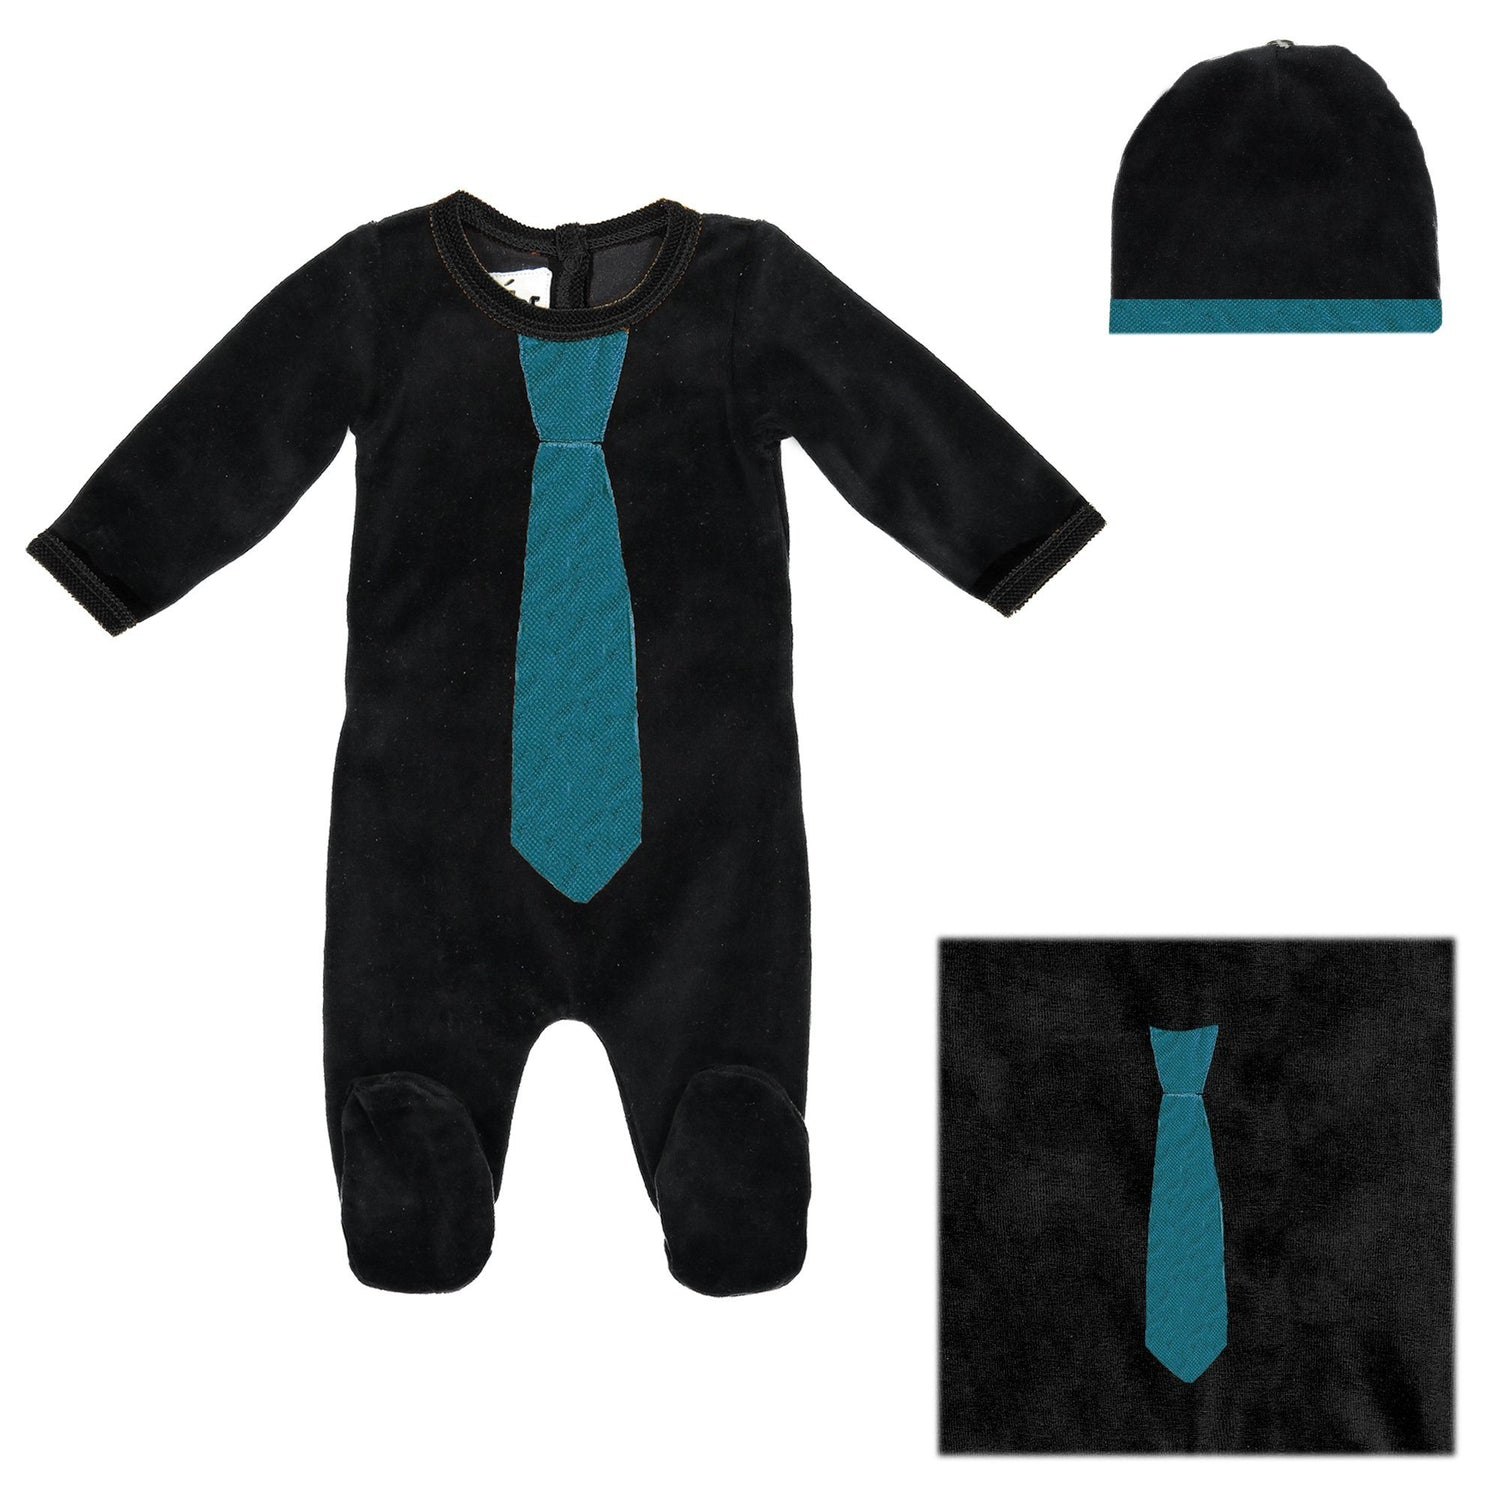 Whimiscal Velour Set Baby Sets Maniere Accessories Black 3 Months